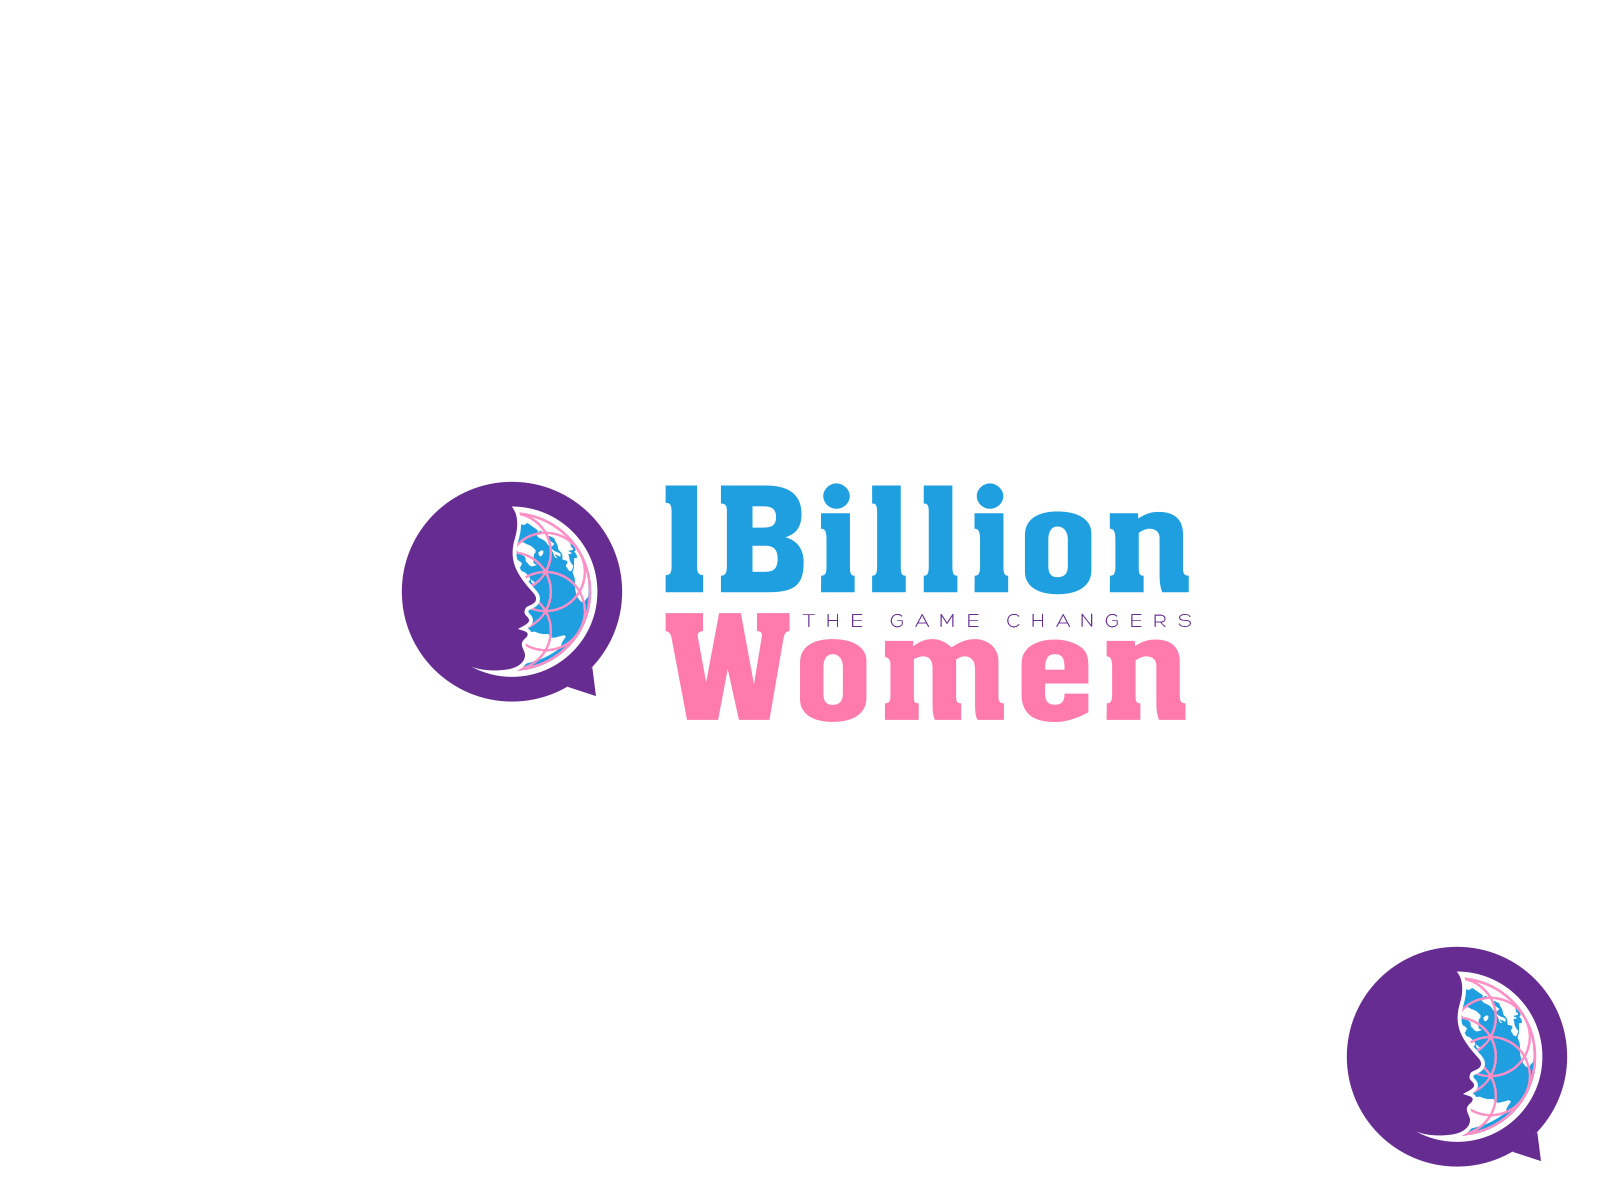 Logo Design by olii - Entry No. 144 in the Logo Design Contest Fun Logo Design for 1BillionWomen.